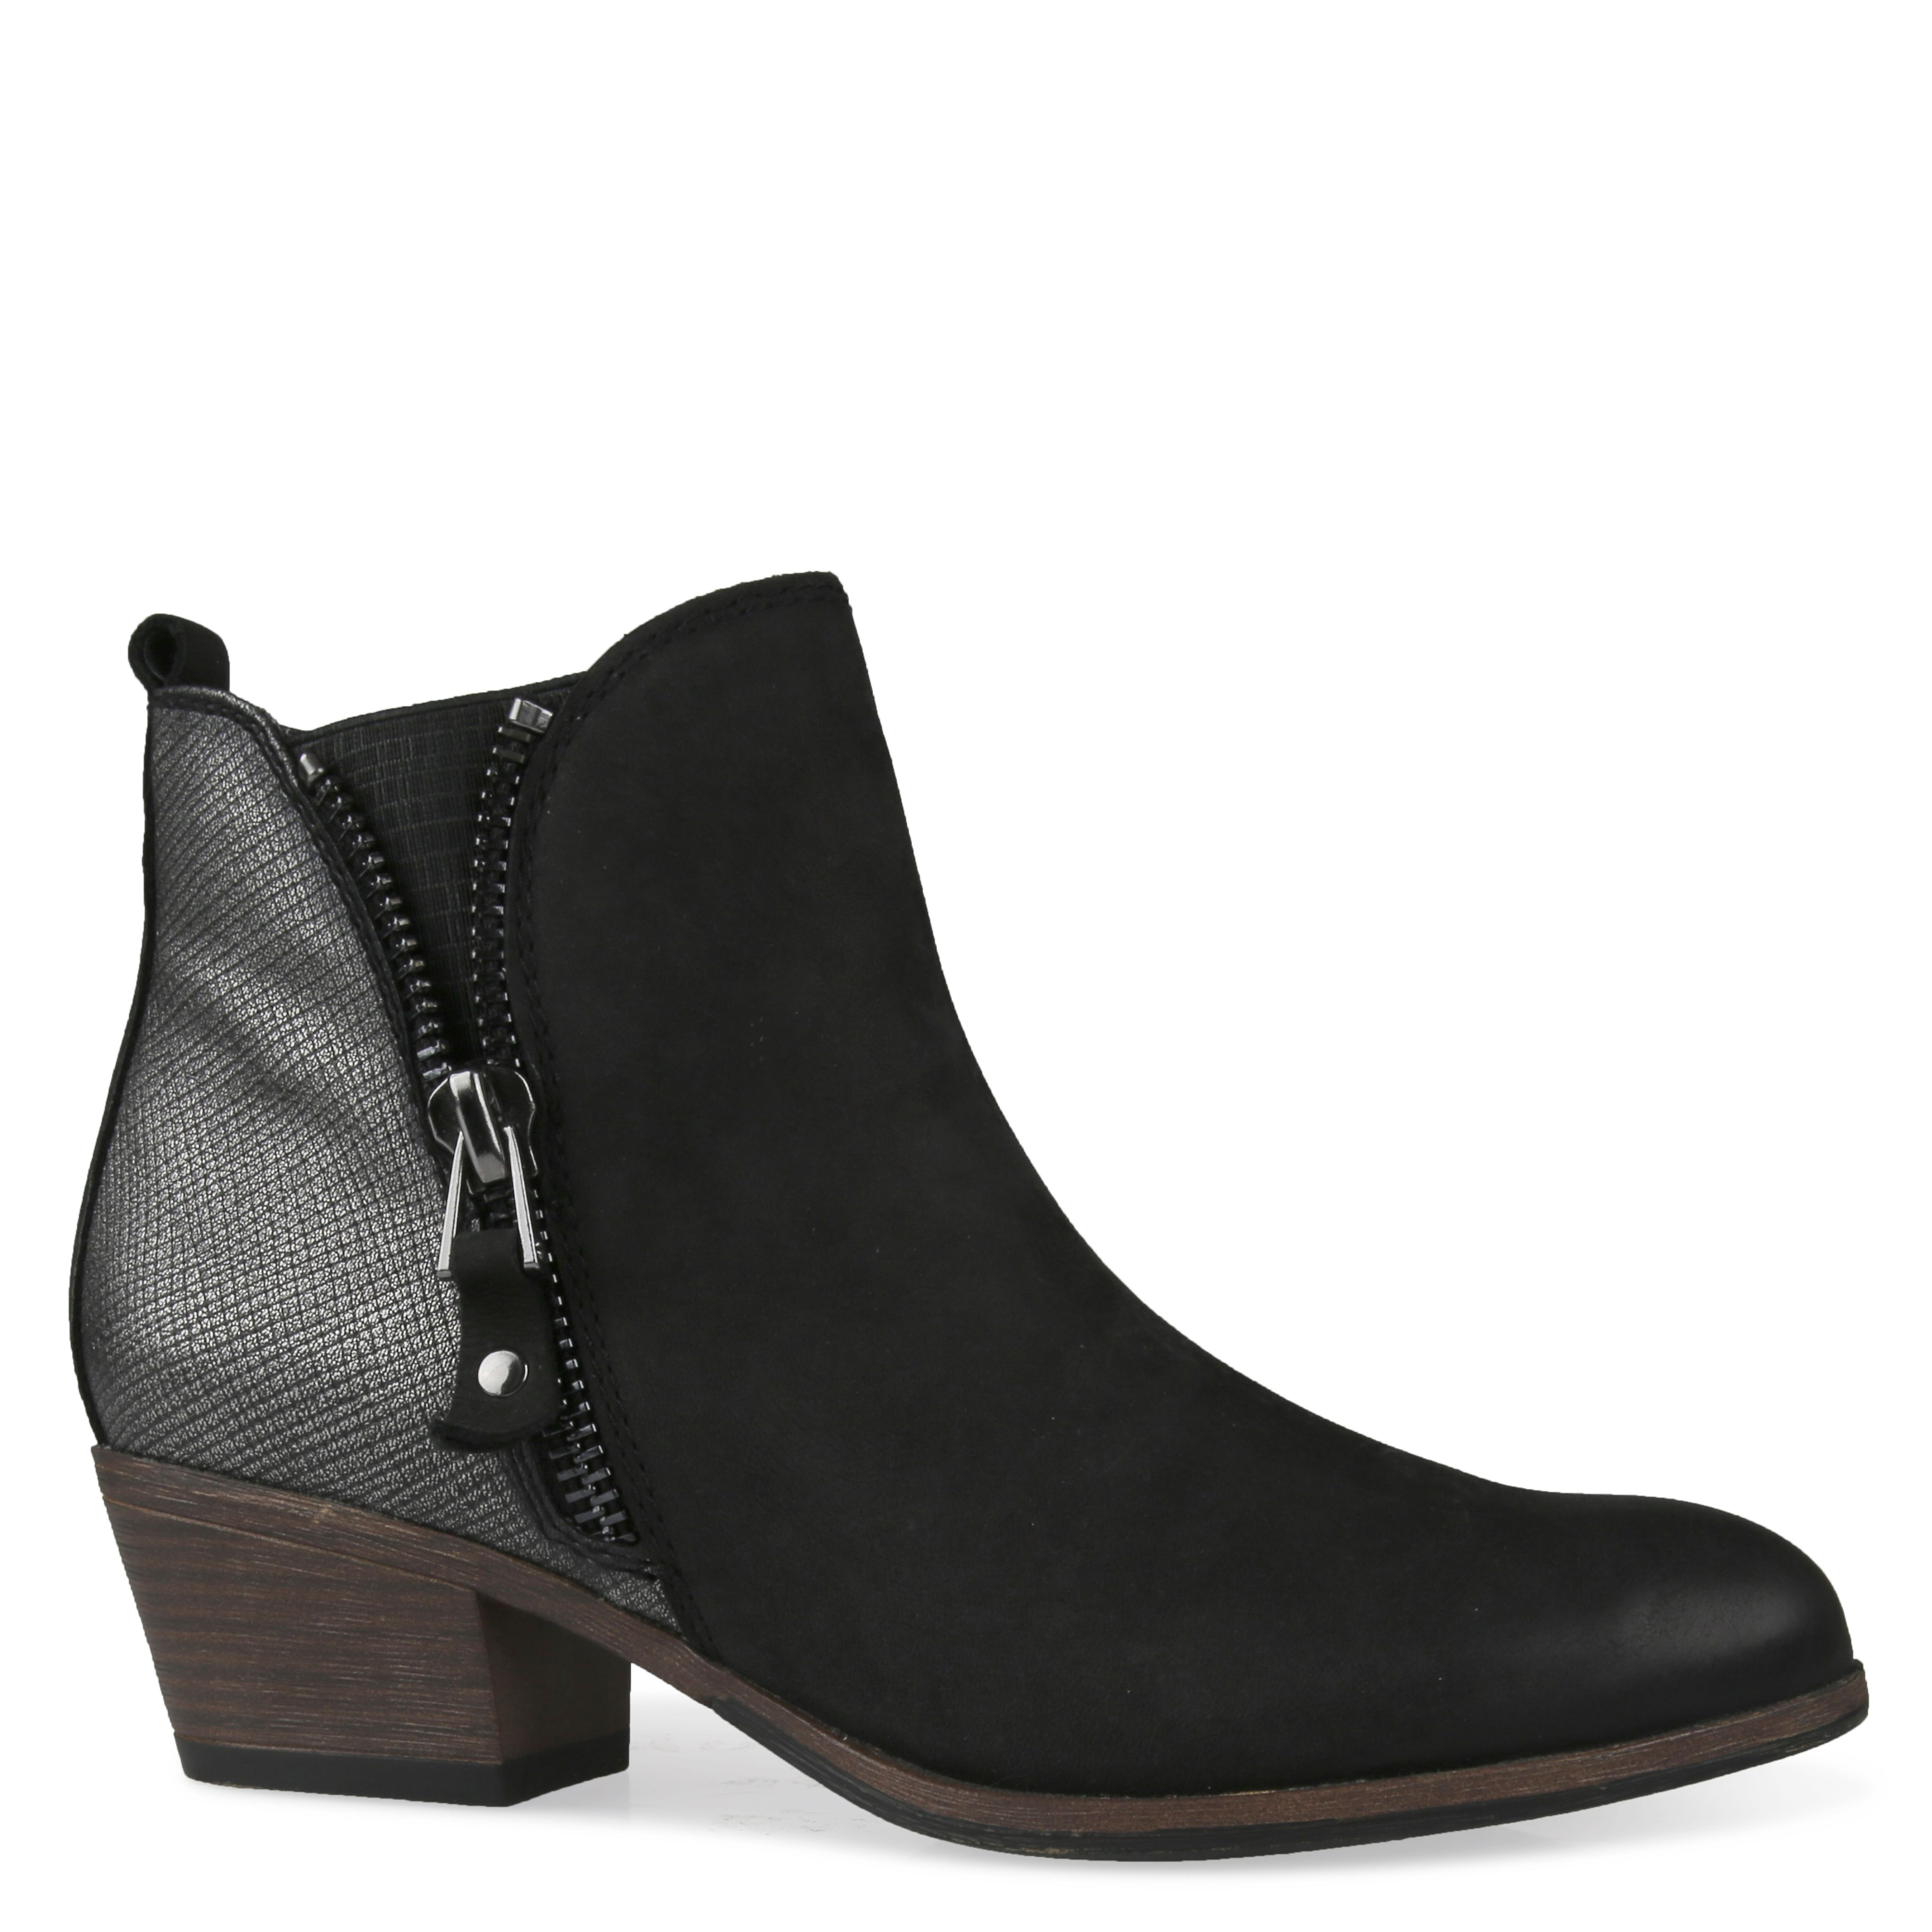 Shoe Connection Gino Ventori Monarch Black Leather Ankle Boot 229 99 Https Www Shoeconnection Co Nz Womens Boots Ankle Boots Gino Ventori Mona